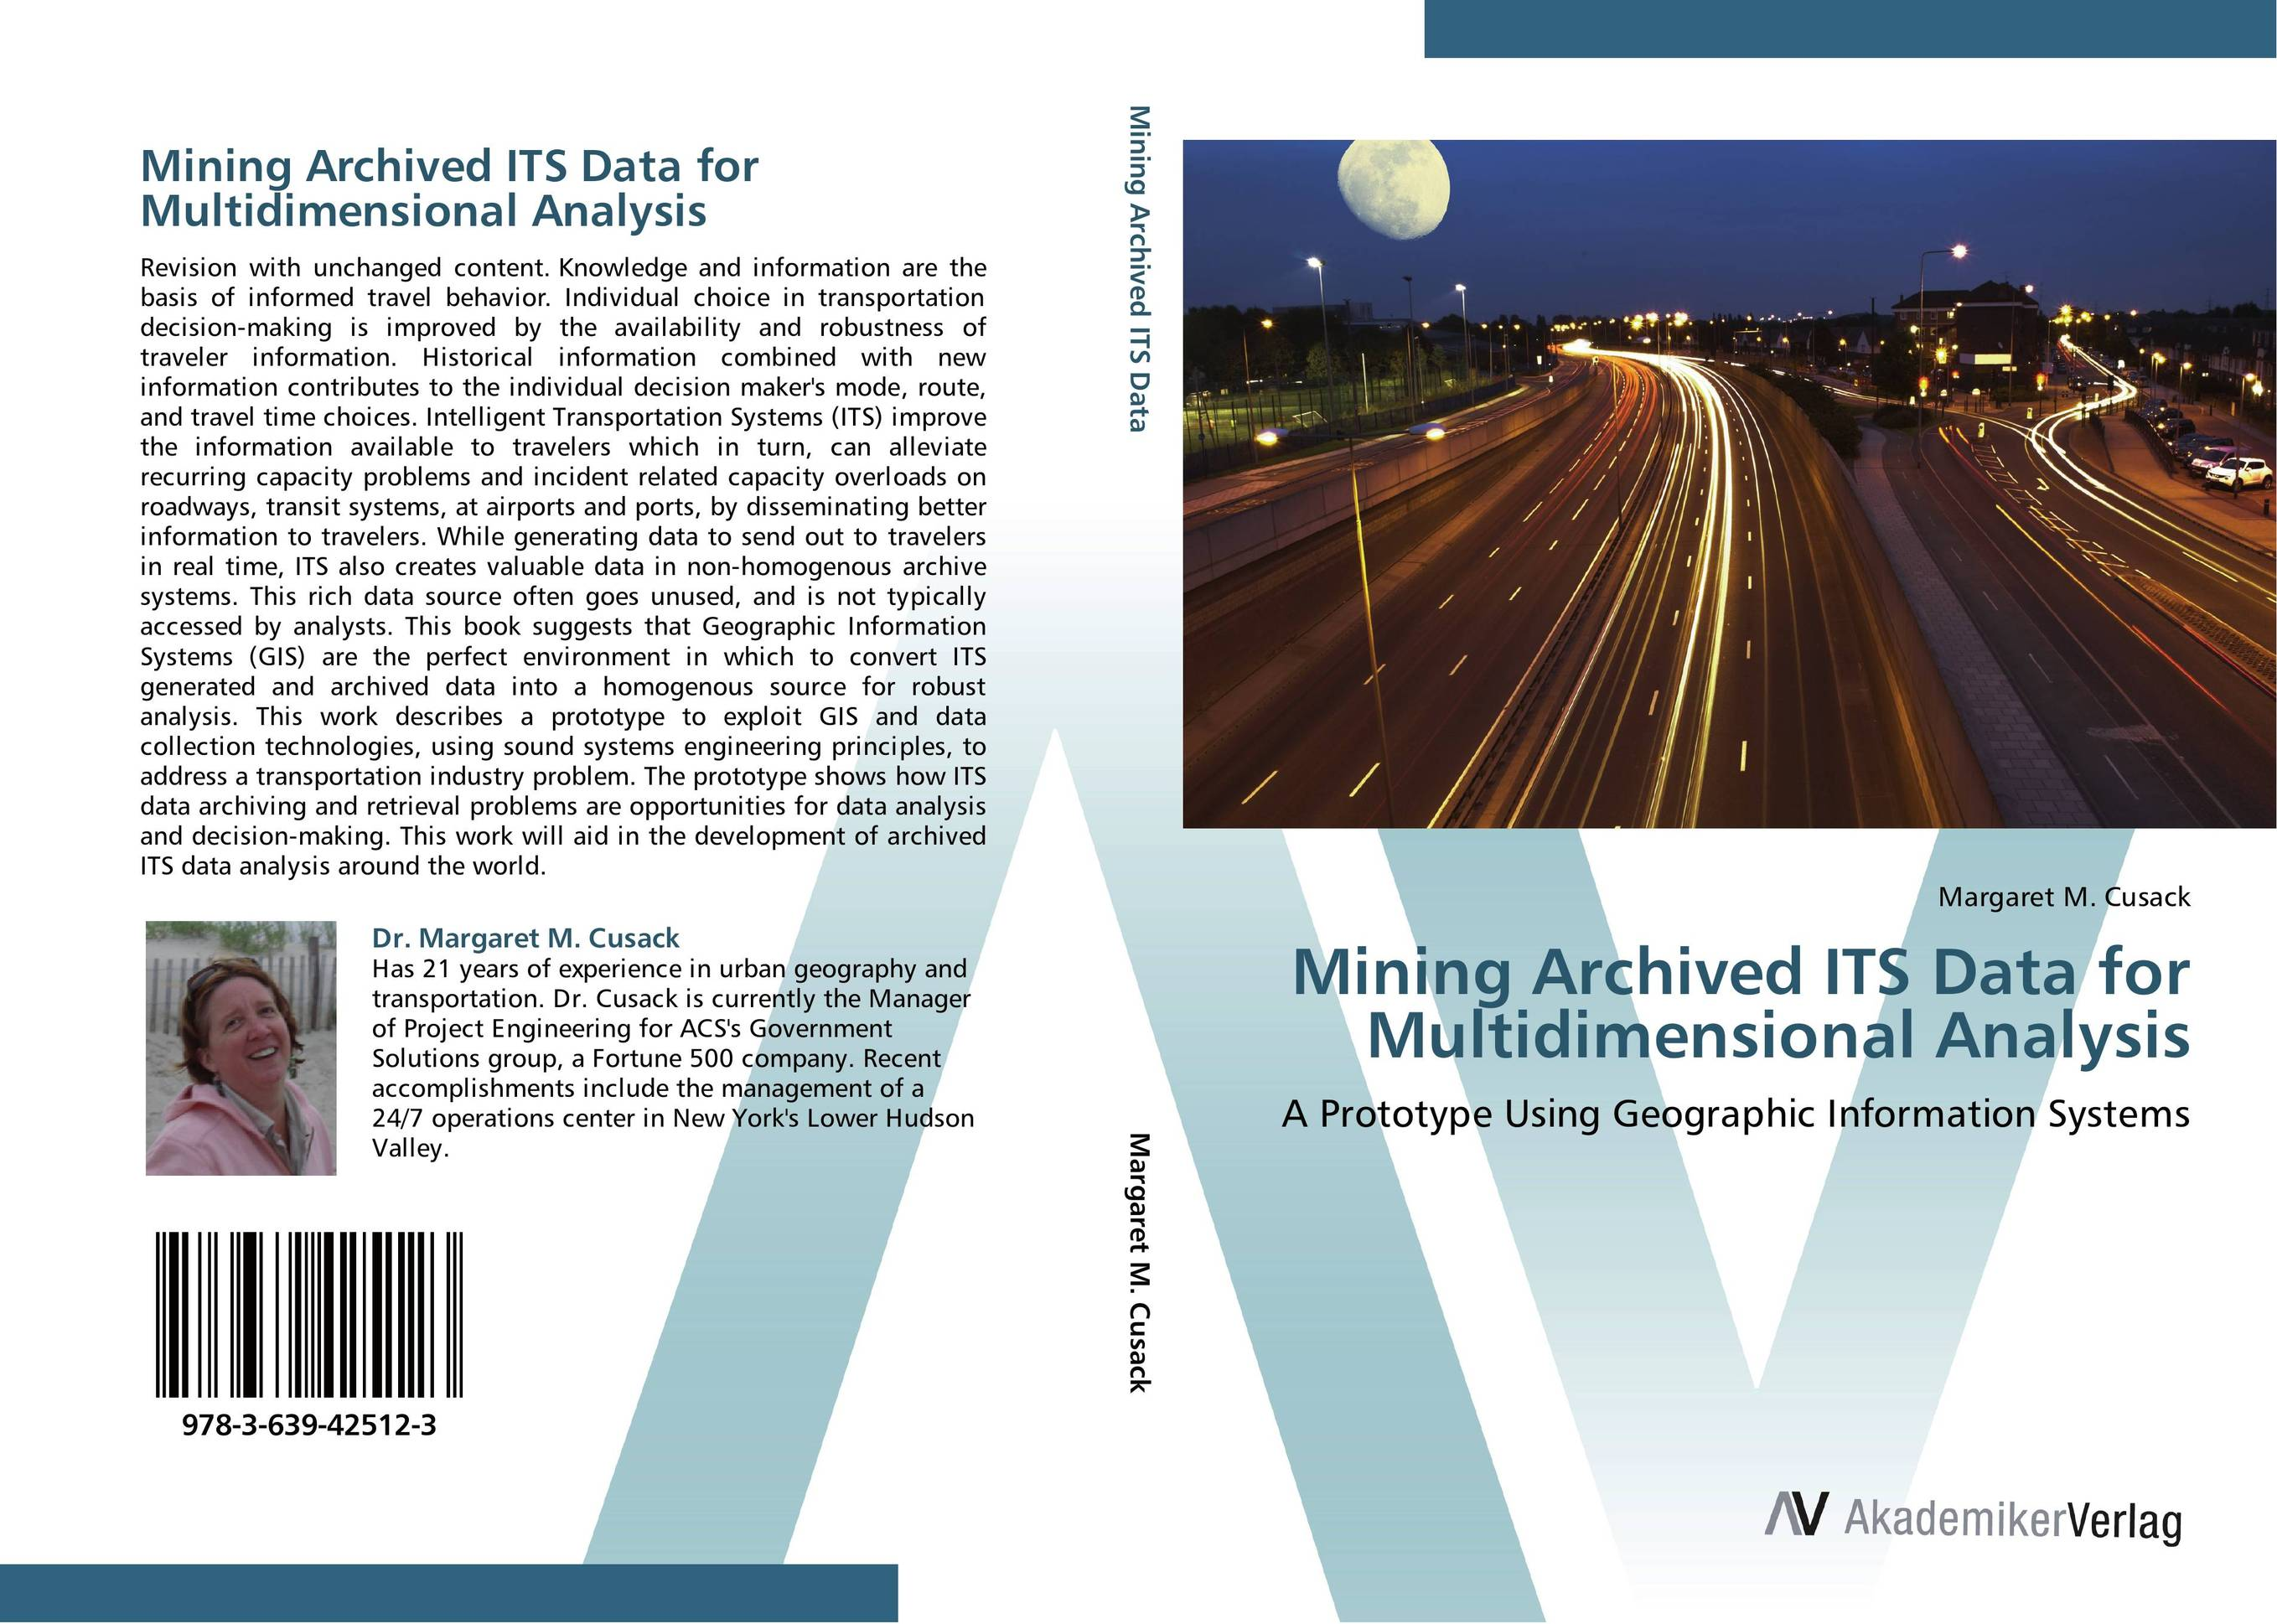 Mining Archived ITS Data for Multidimensional Analysis transit rights in petroleum transportation systems